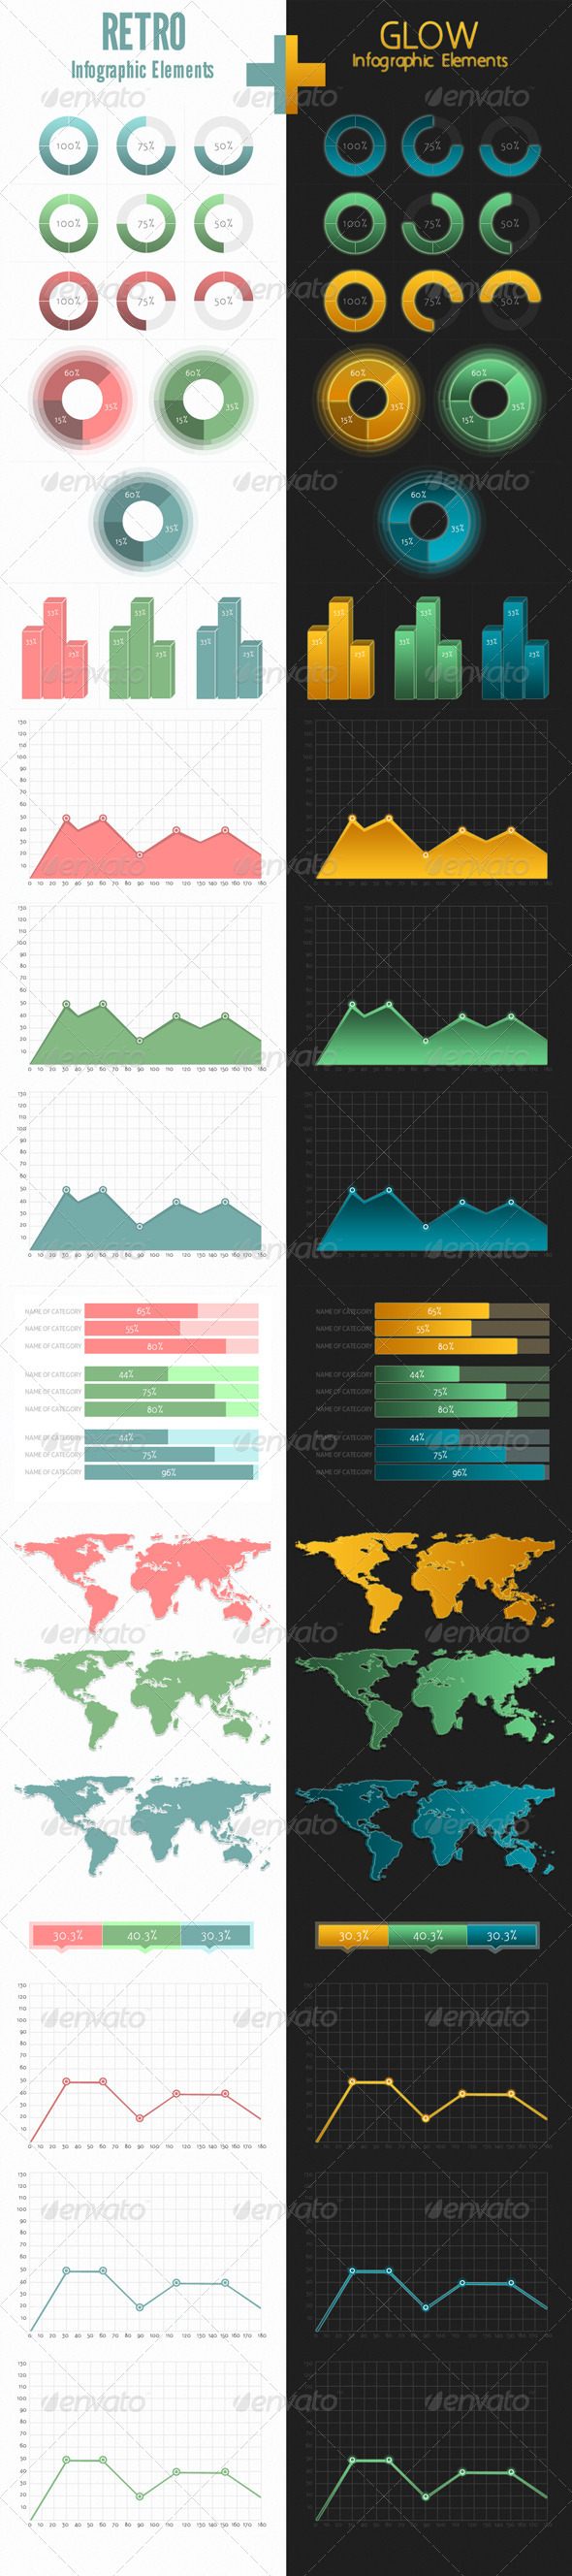 Retro+Glow Infographic - Miscellaneous Web Elements